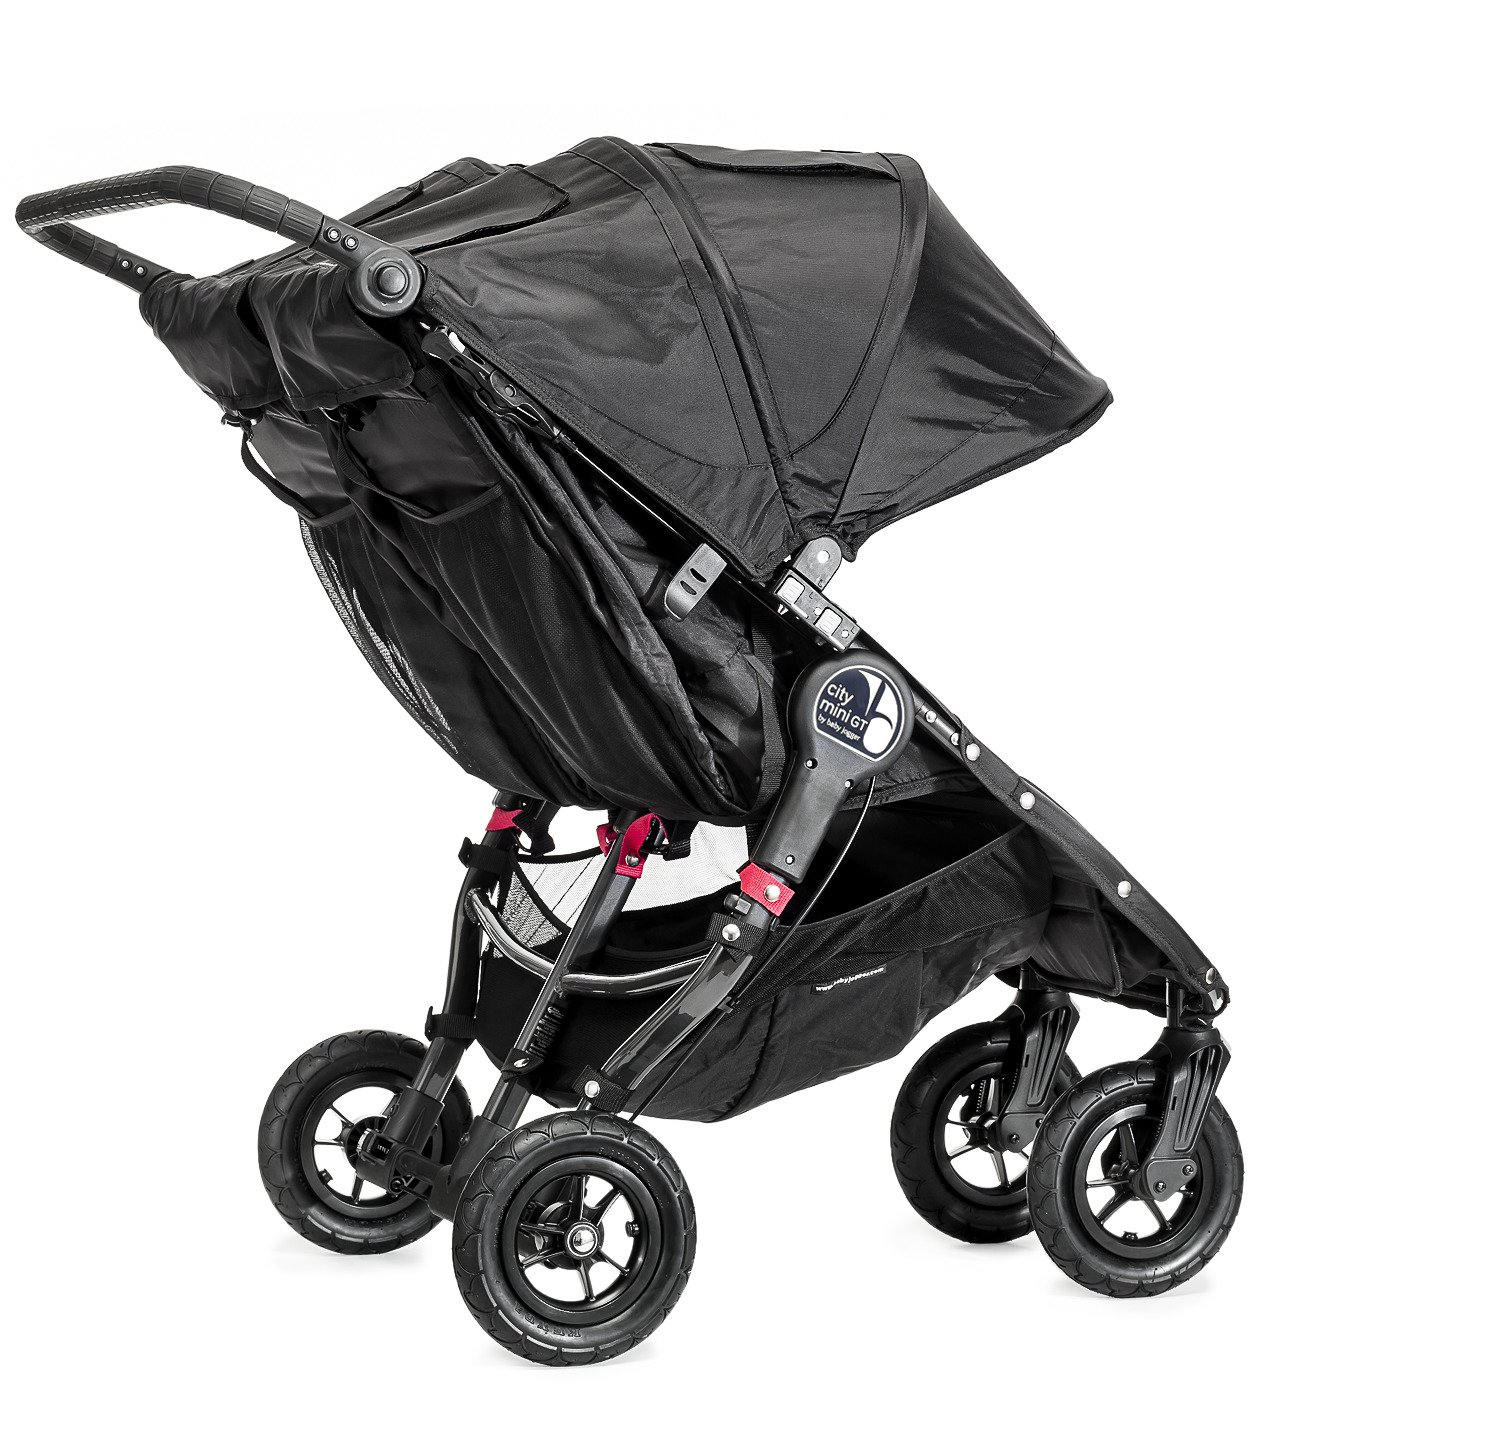 Baby Jogger City Mini GT Double Stroller Black  Taking a little detour is fun, the City Mini GT Double offers all-terrain wheels that let you make your own rules; the all-terrain wheels and front wheel suspension work in unison to give you full control on where and how you go while keeping your little one comfortable Lift the straps and the City Mini GT Double folds itself: Simply and compactly, it really is as easy as it sounds; the auto-lock will lock the pushchair for transportation or storage An adjustable handlebar can accommodate different heights and a hand-operated parking brake keeps all the controls within reach 4